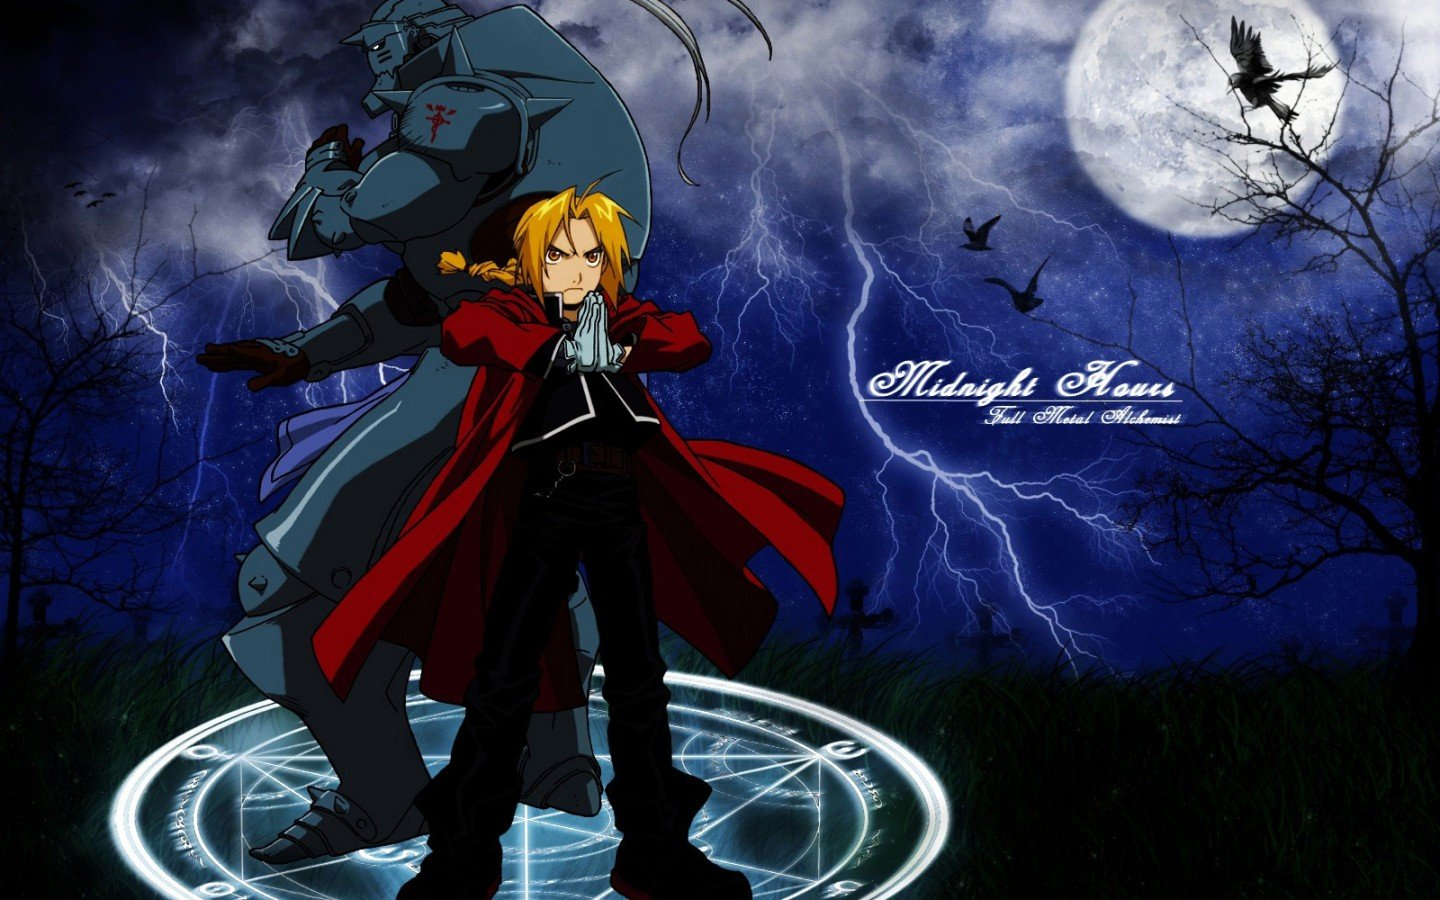 Fullmetal Alchemist Merchandise Wallpaper Best Cool 1440x900